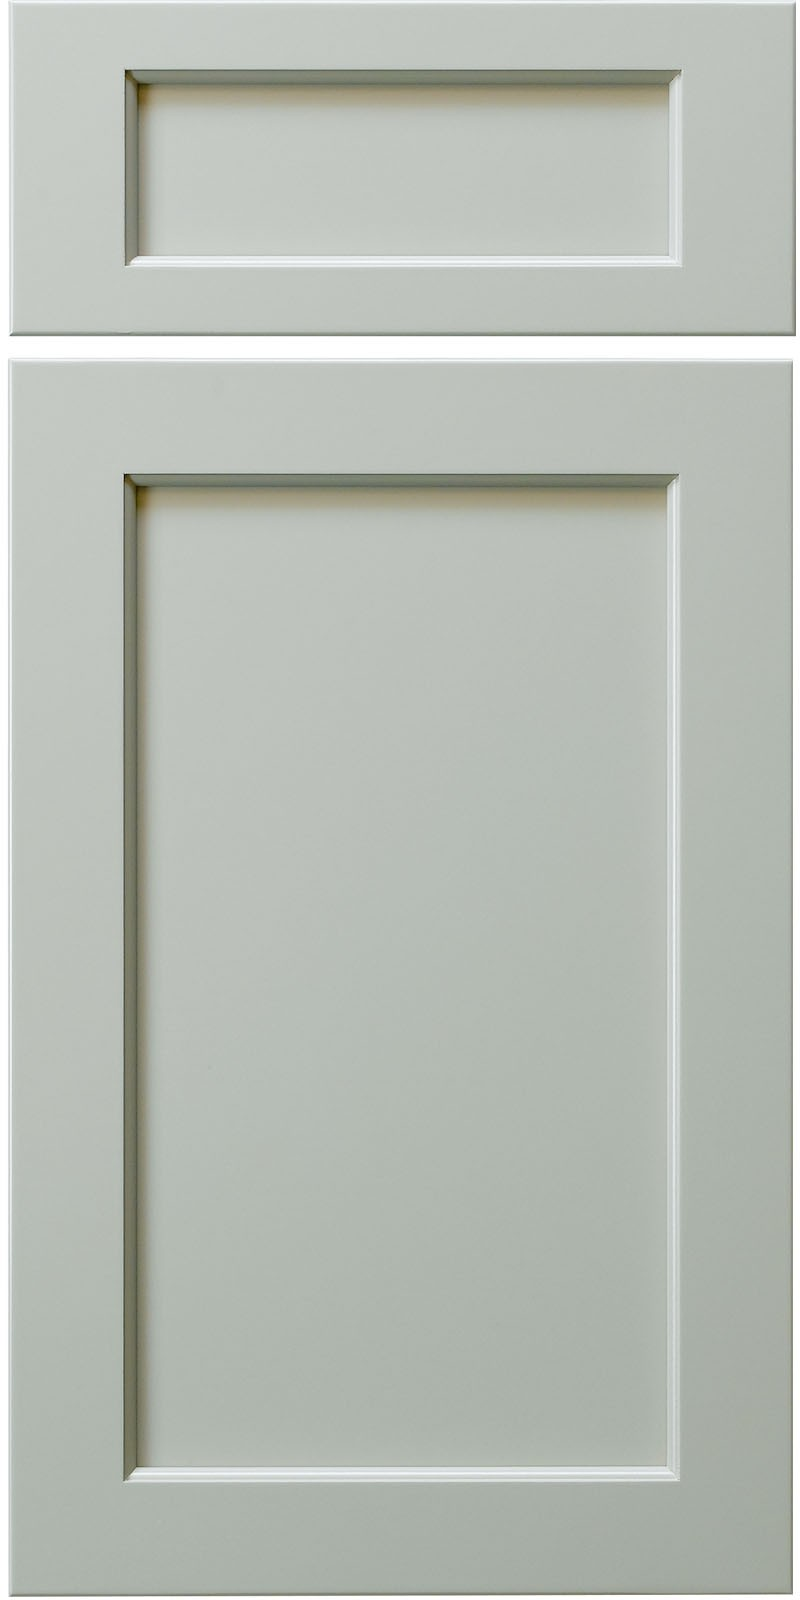 Tw medium density fiberboard materials cabinet